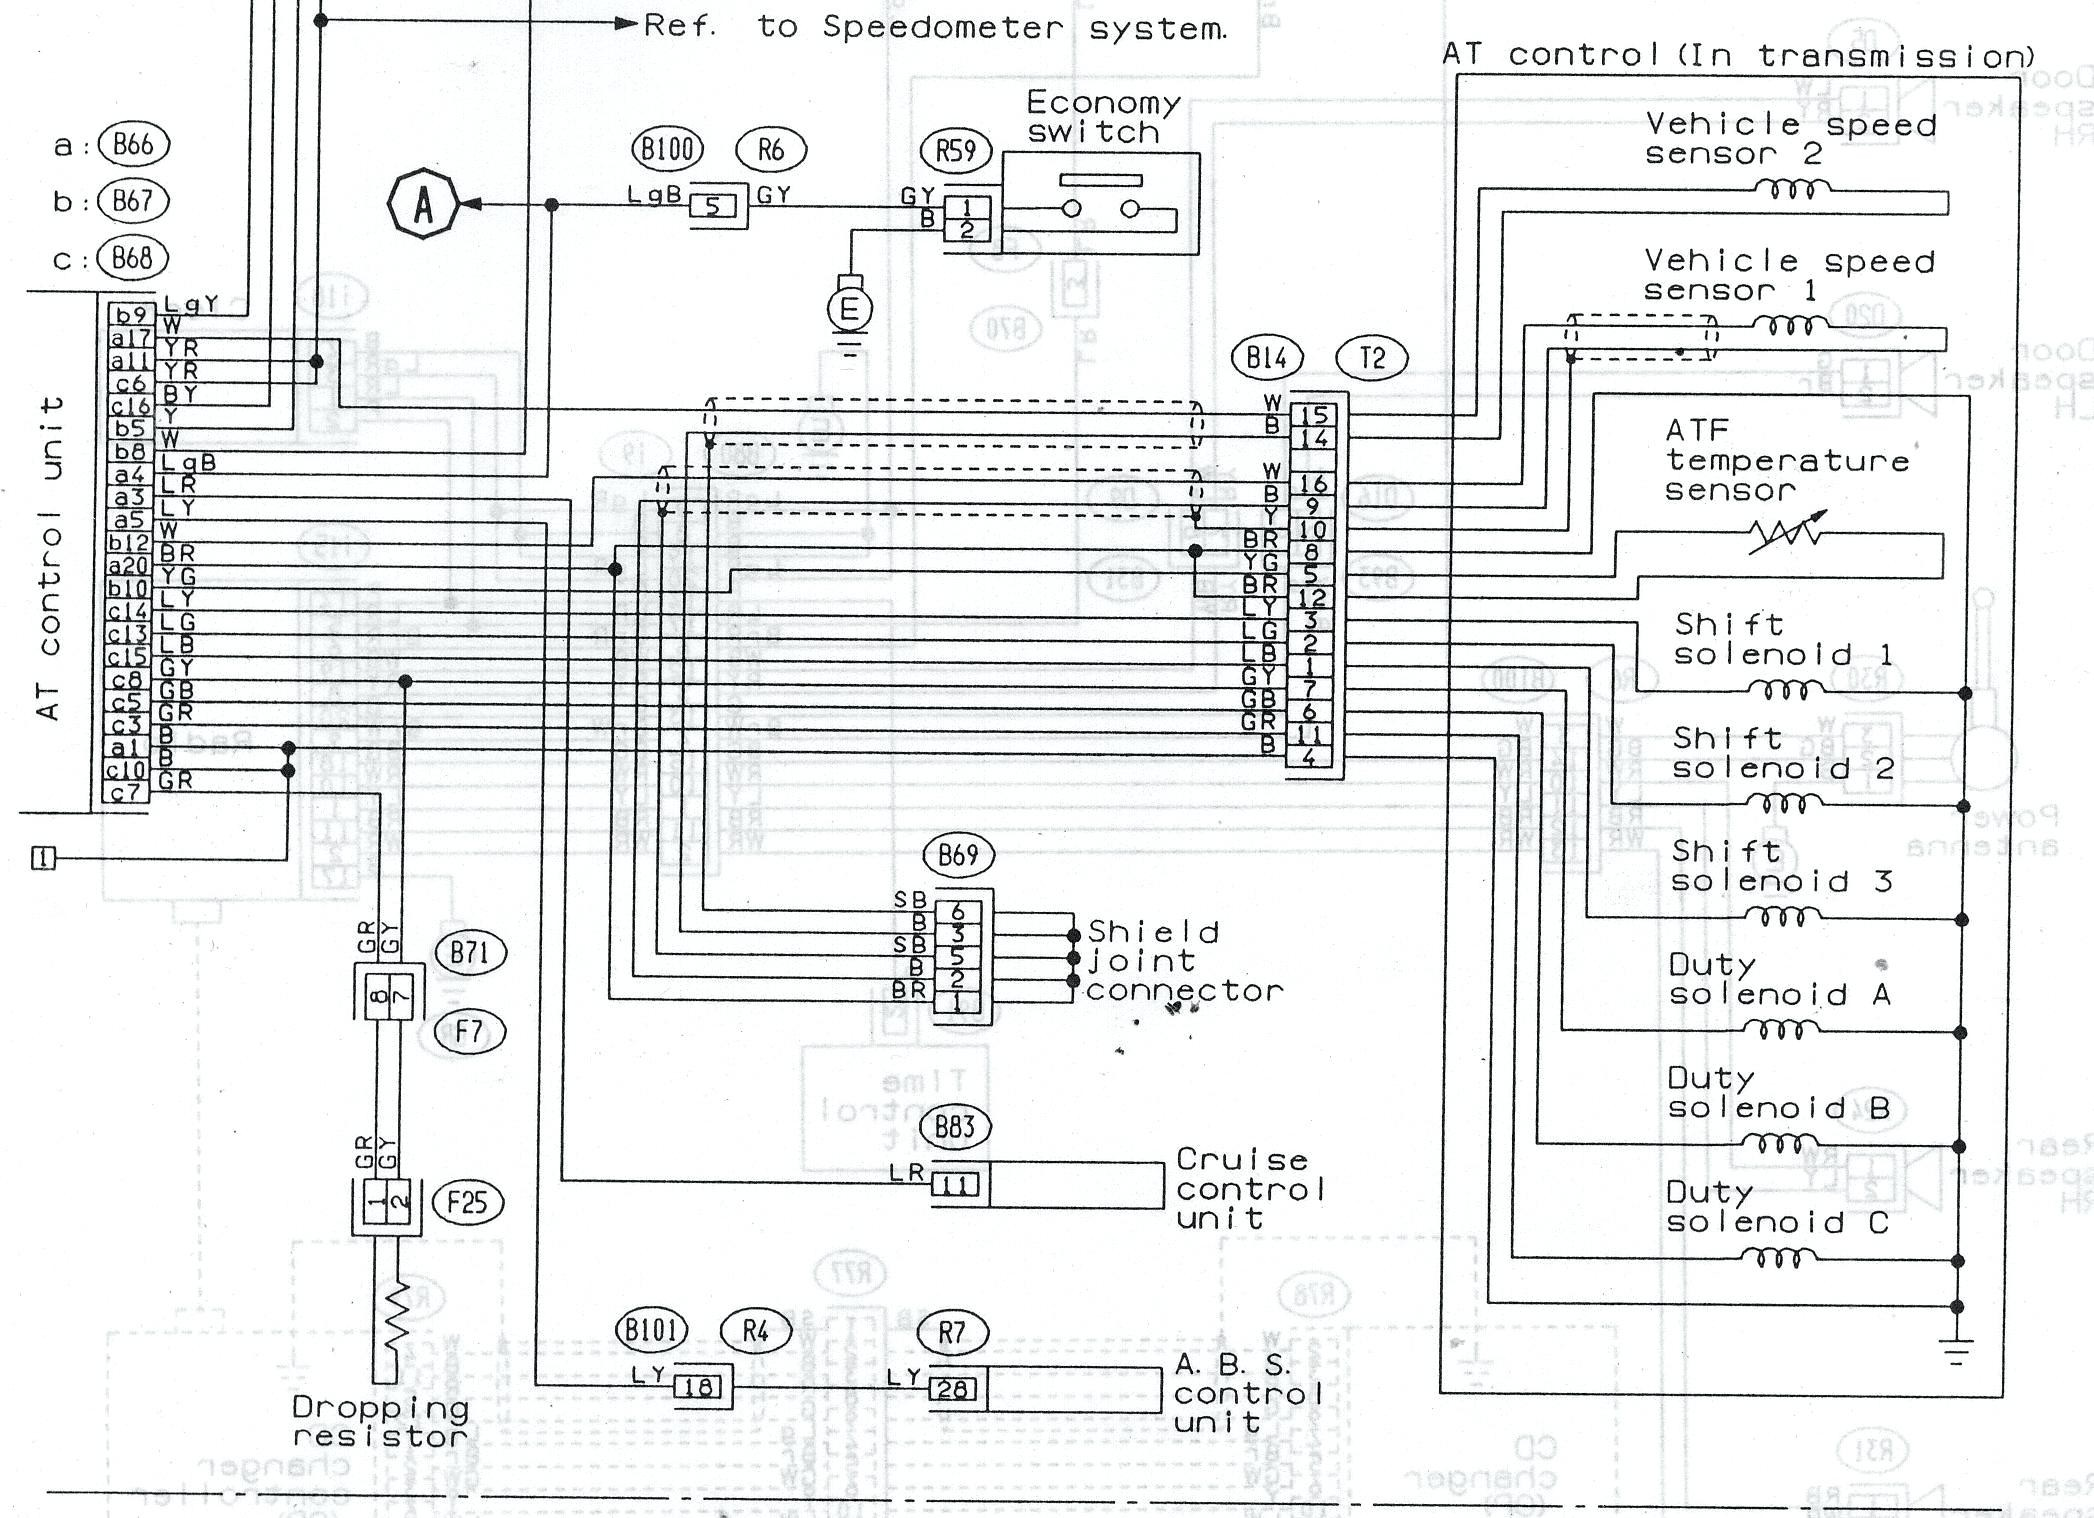 Diagram Subaru Impreza Wiring Diagram Transmission